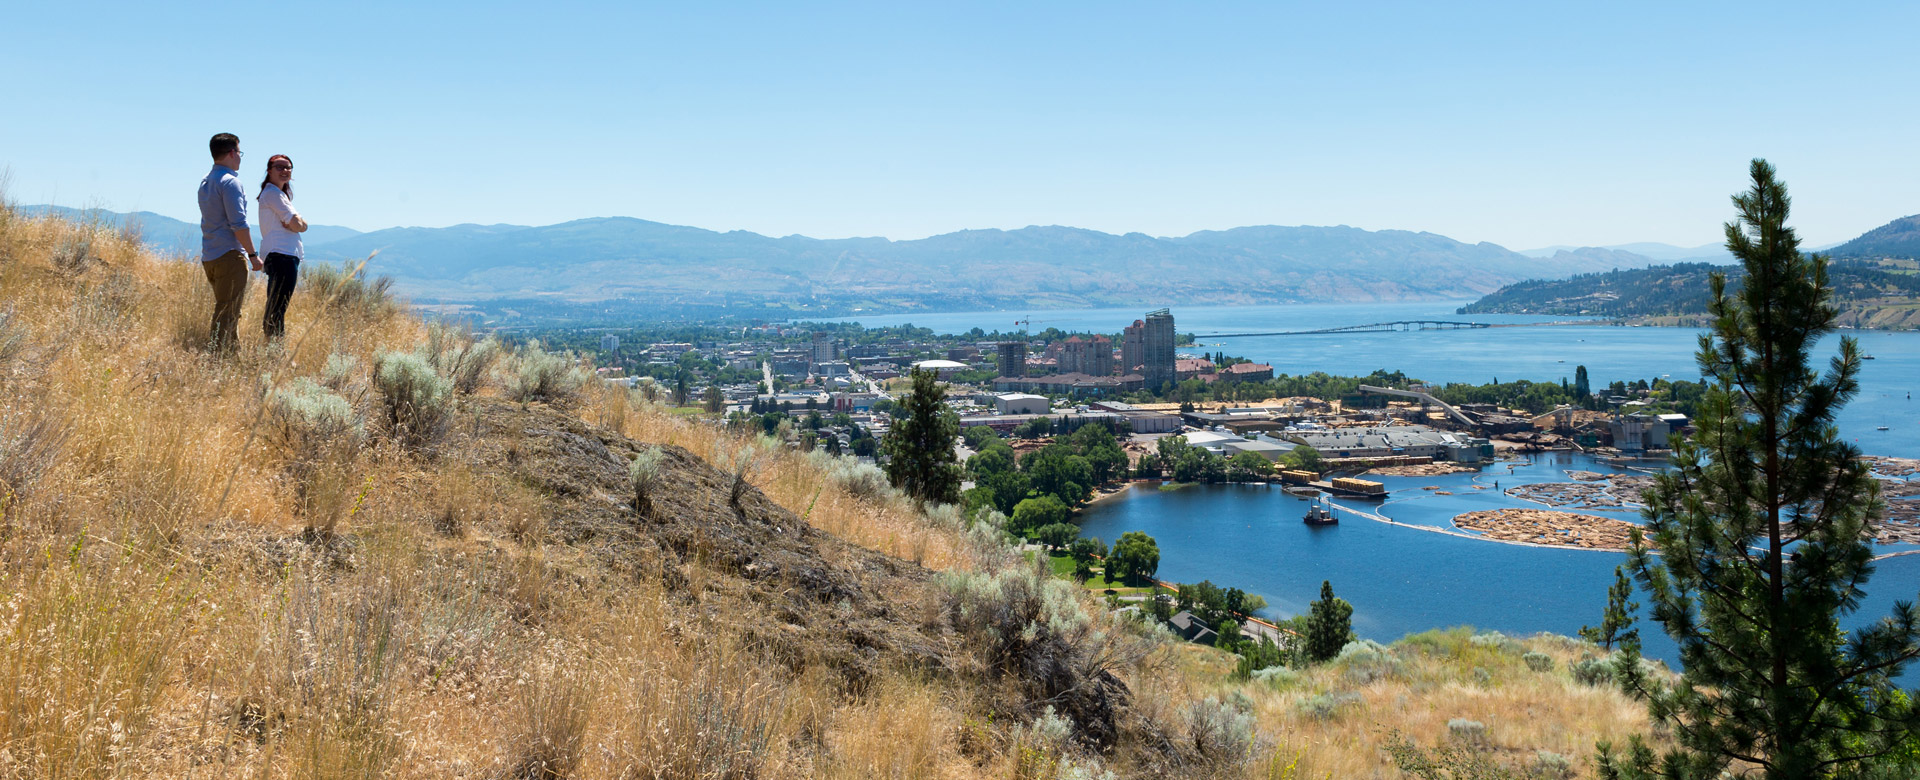 Overlooking Downtown Kelowna